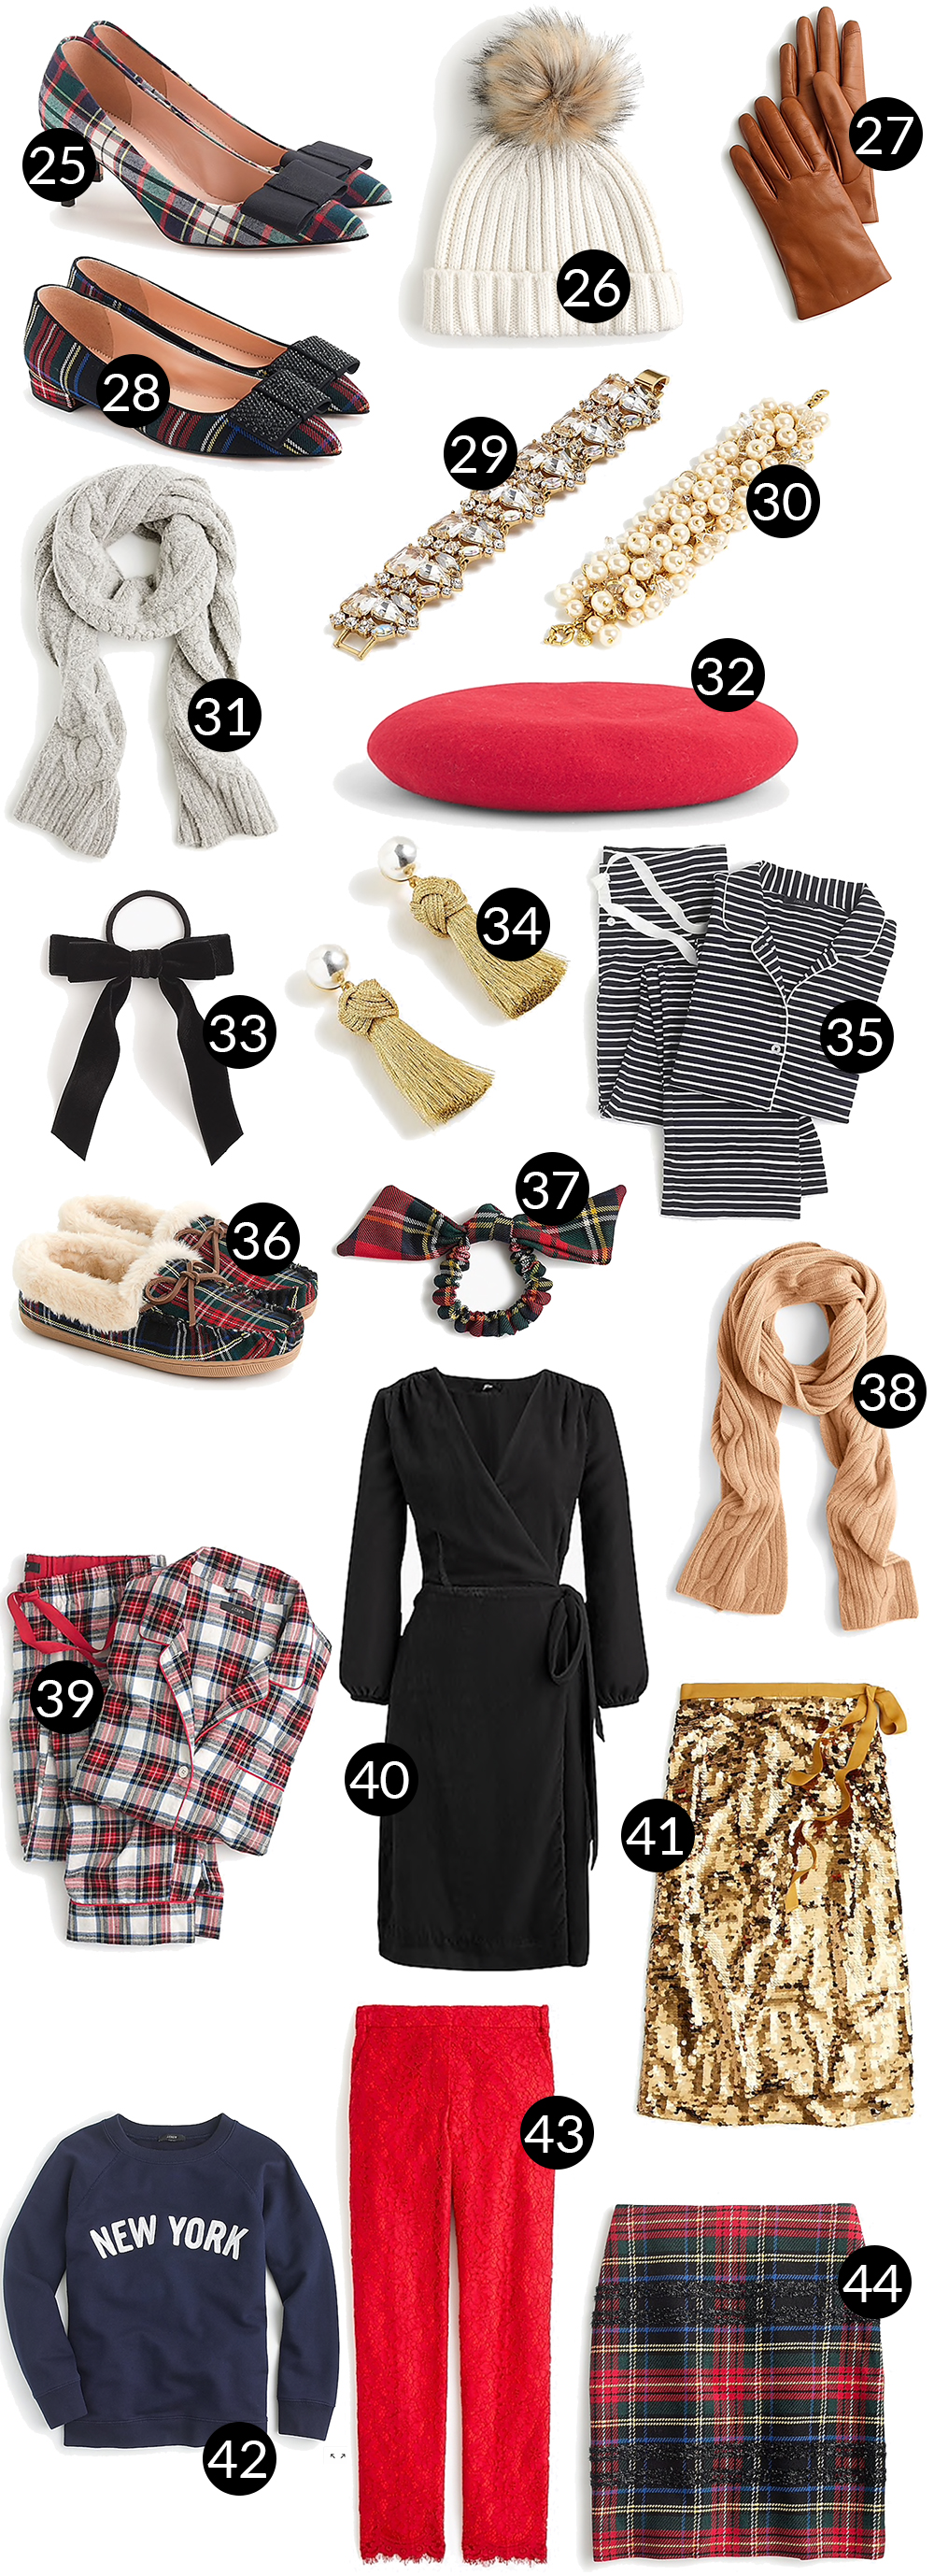 Black Friday sales - J.Crew - Kelly in the City